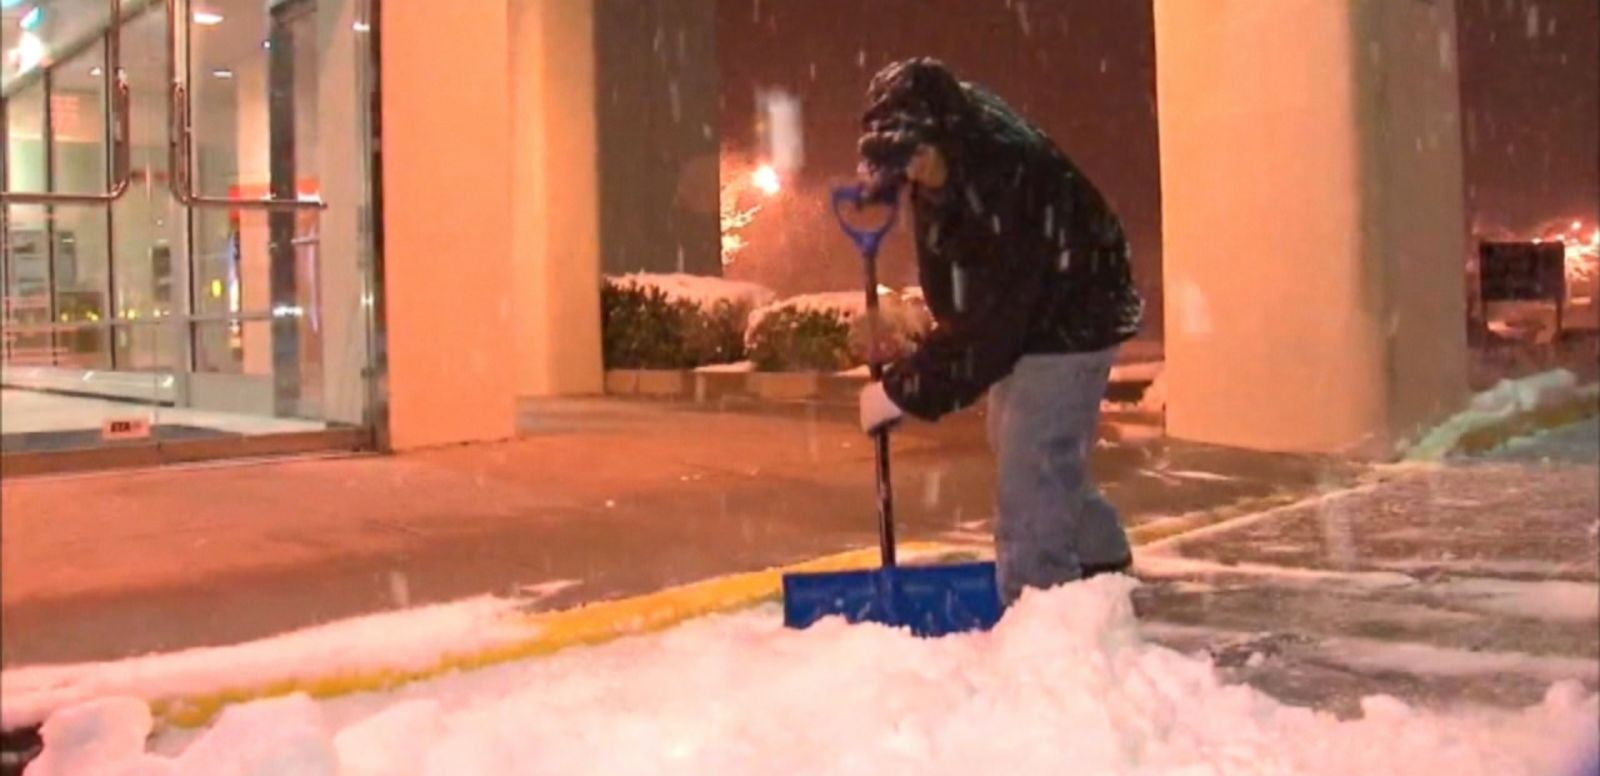 VIDEO: Nearly 12,000 people are treated at emergency rooms each year for medical emergencies related to shoveling snow.